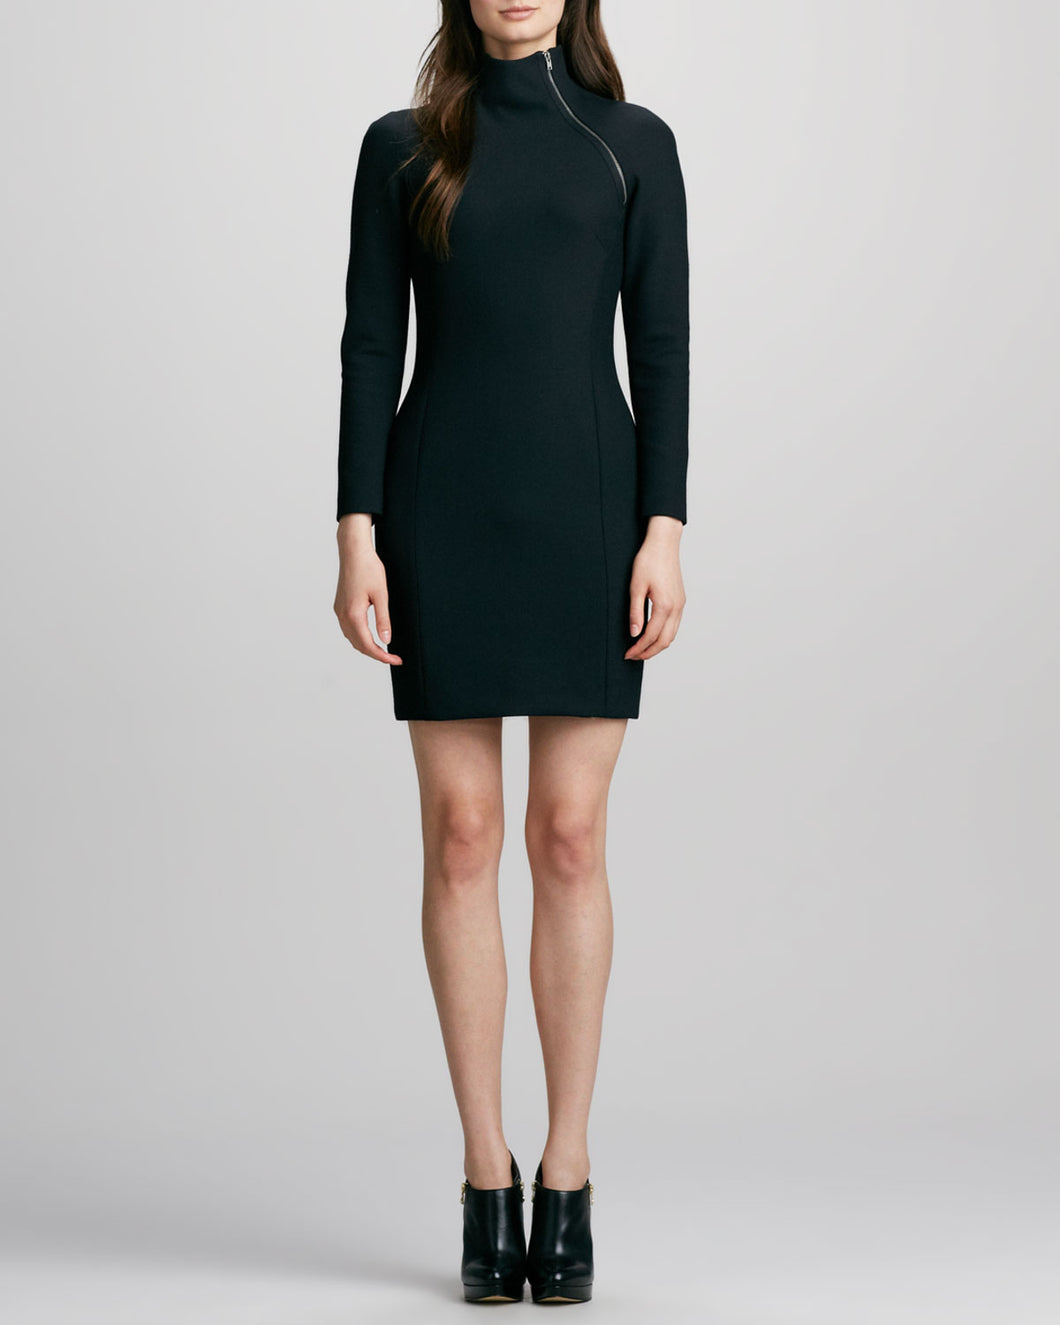 Theory Danella Zip-Neck Dress - Size 6